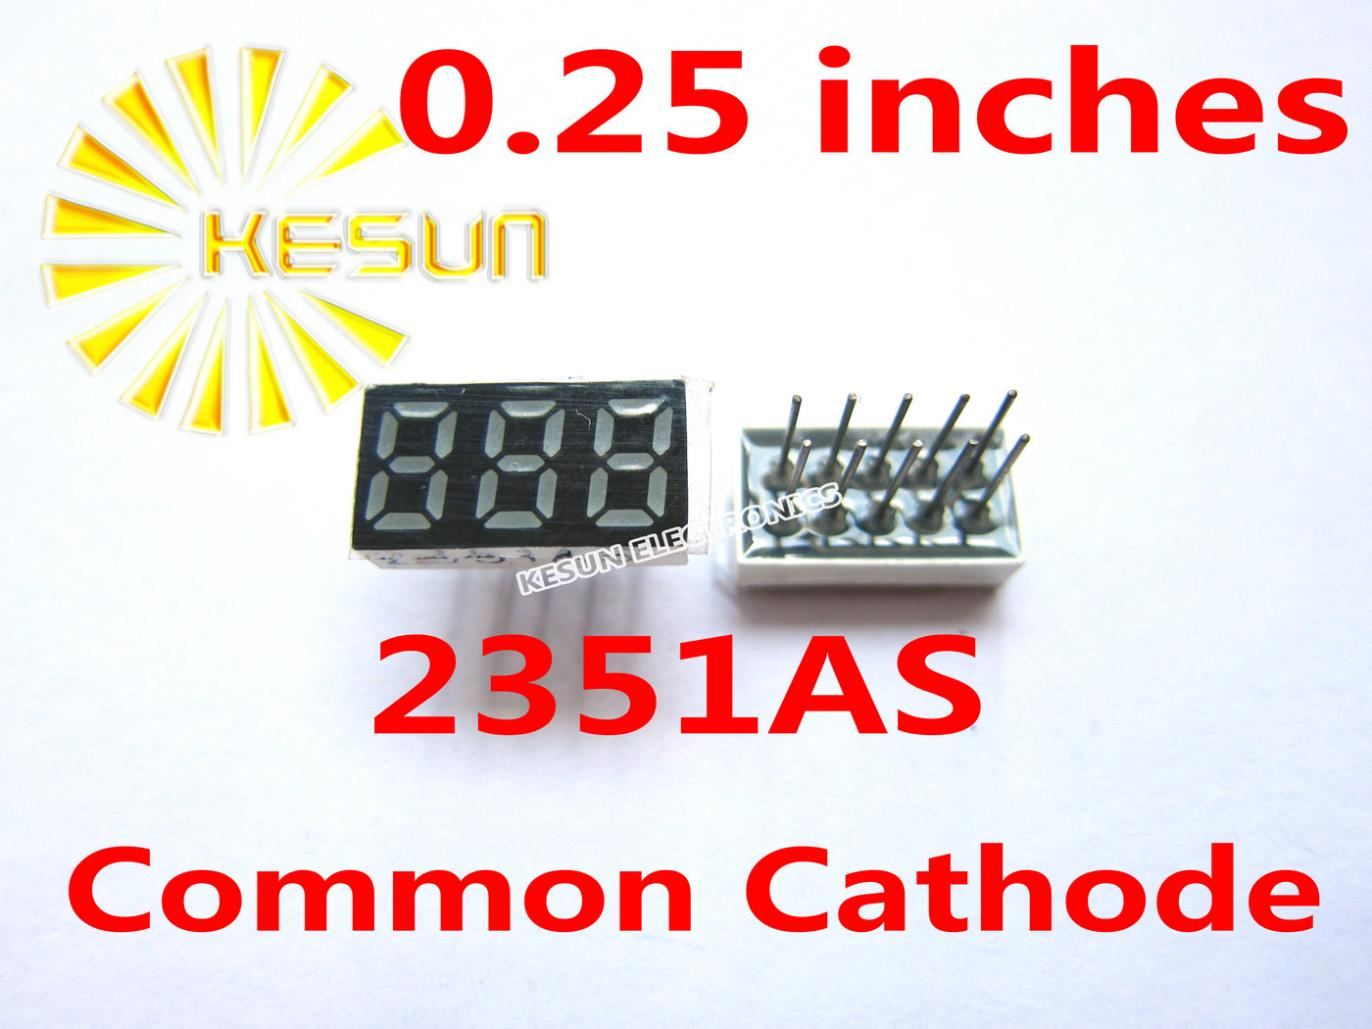 10PCS X 0.25 Inches Red Common Cathode/Anode 3 Digital Tube 2351AS 2351BS LED Display Module Light Beads